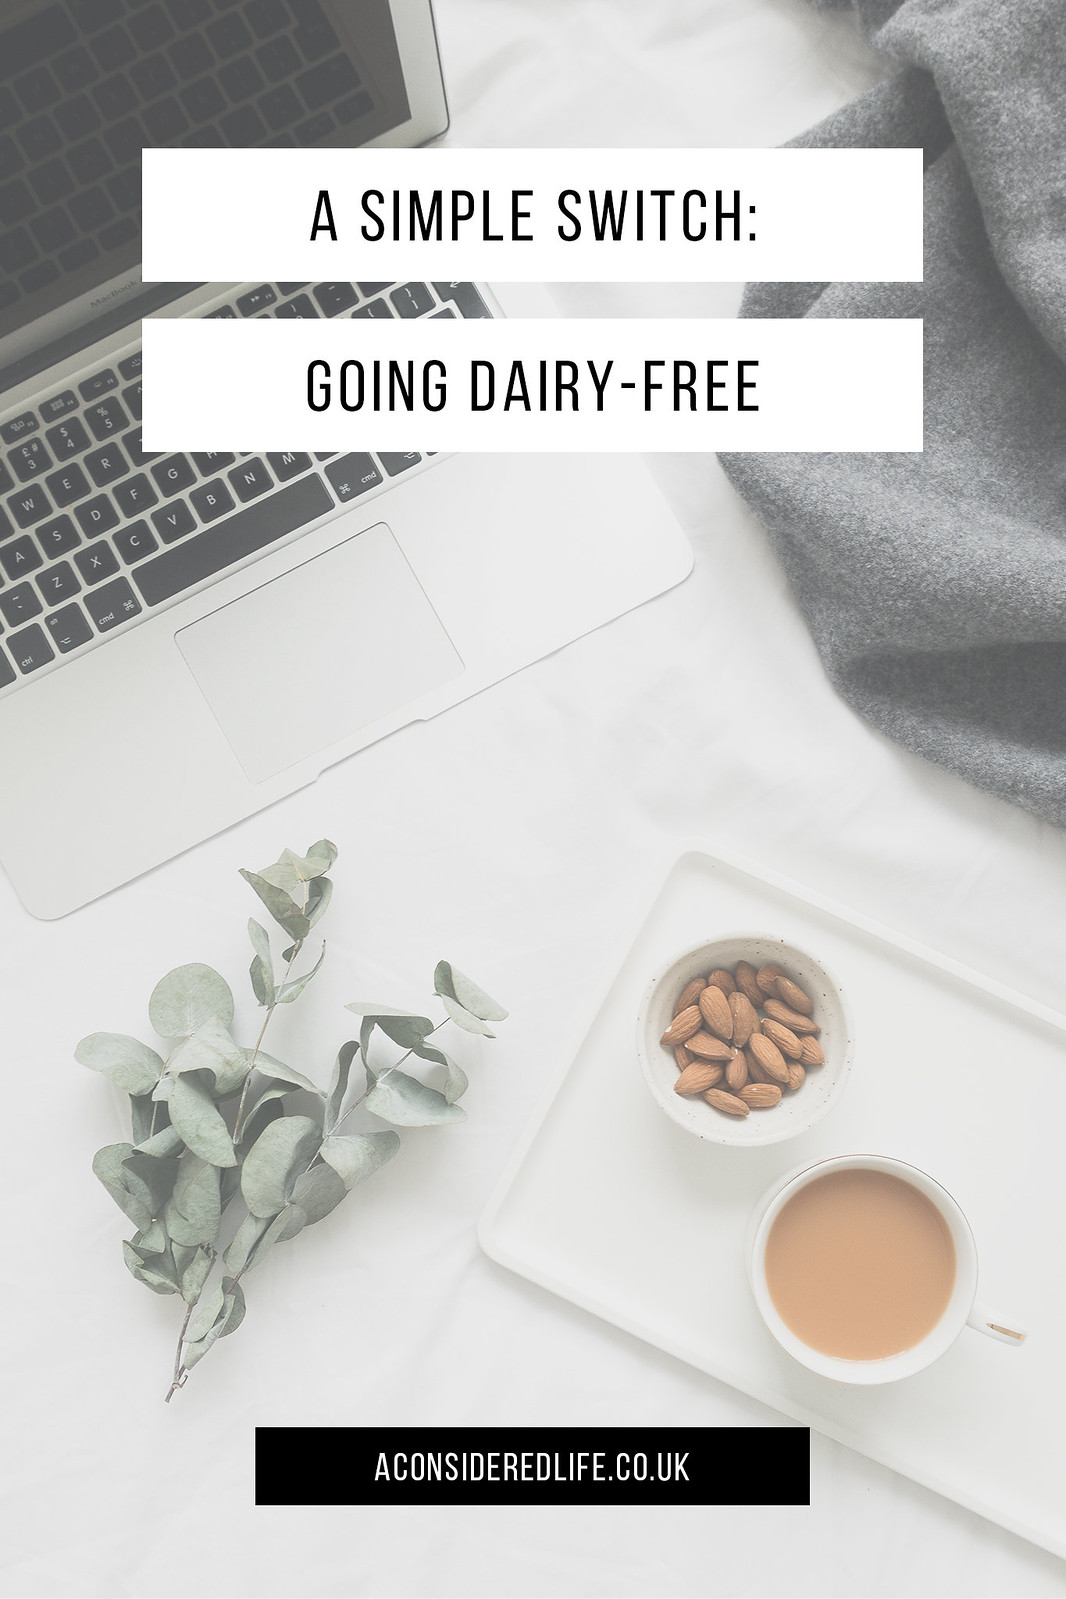 A Simple Switch: Going Dairy-Free With Innocent